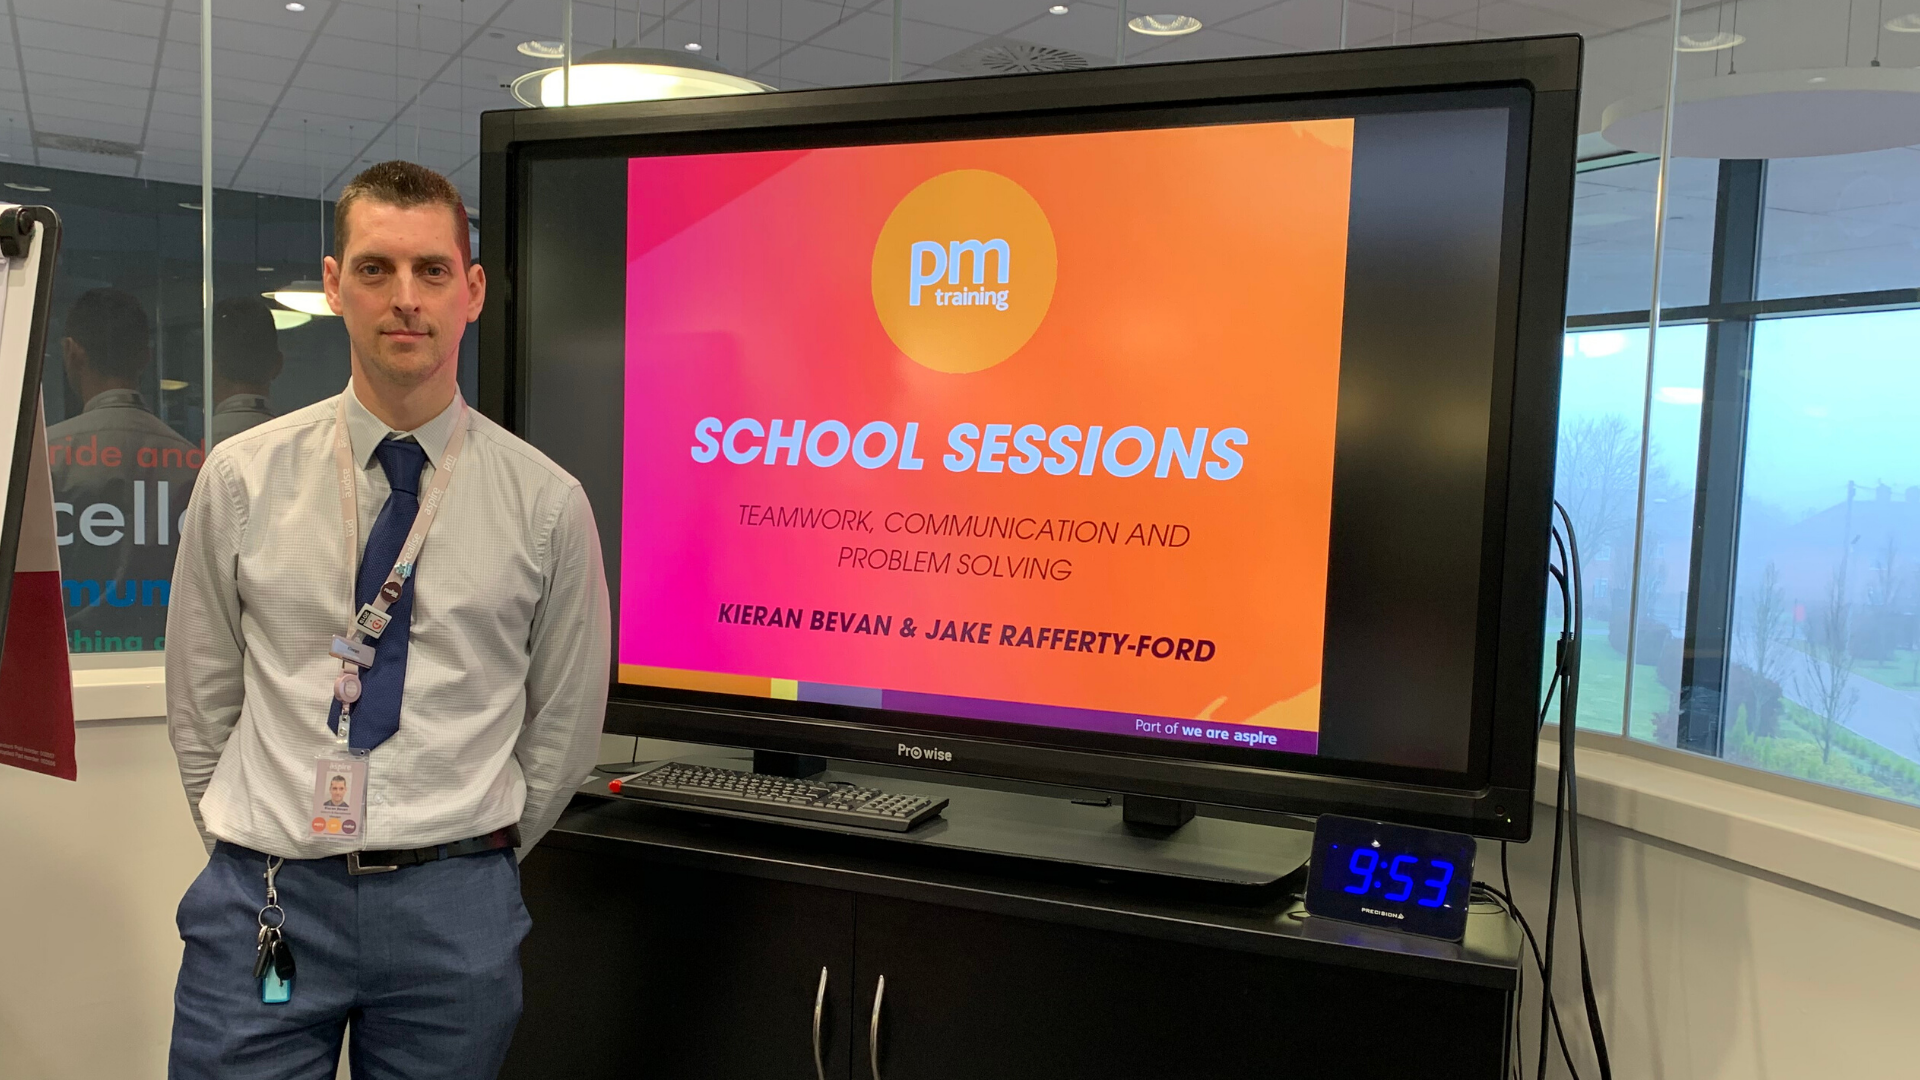 PM Training School Gatsby Sessions